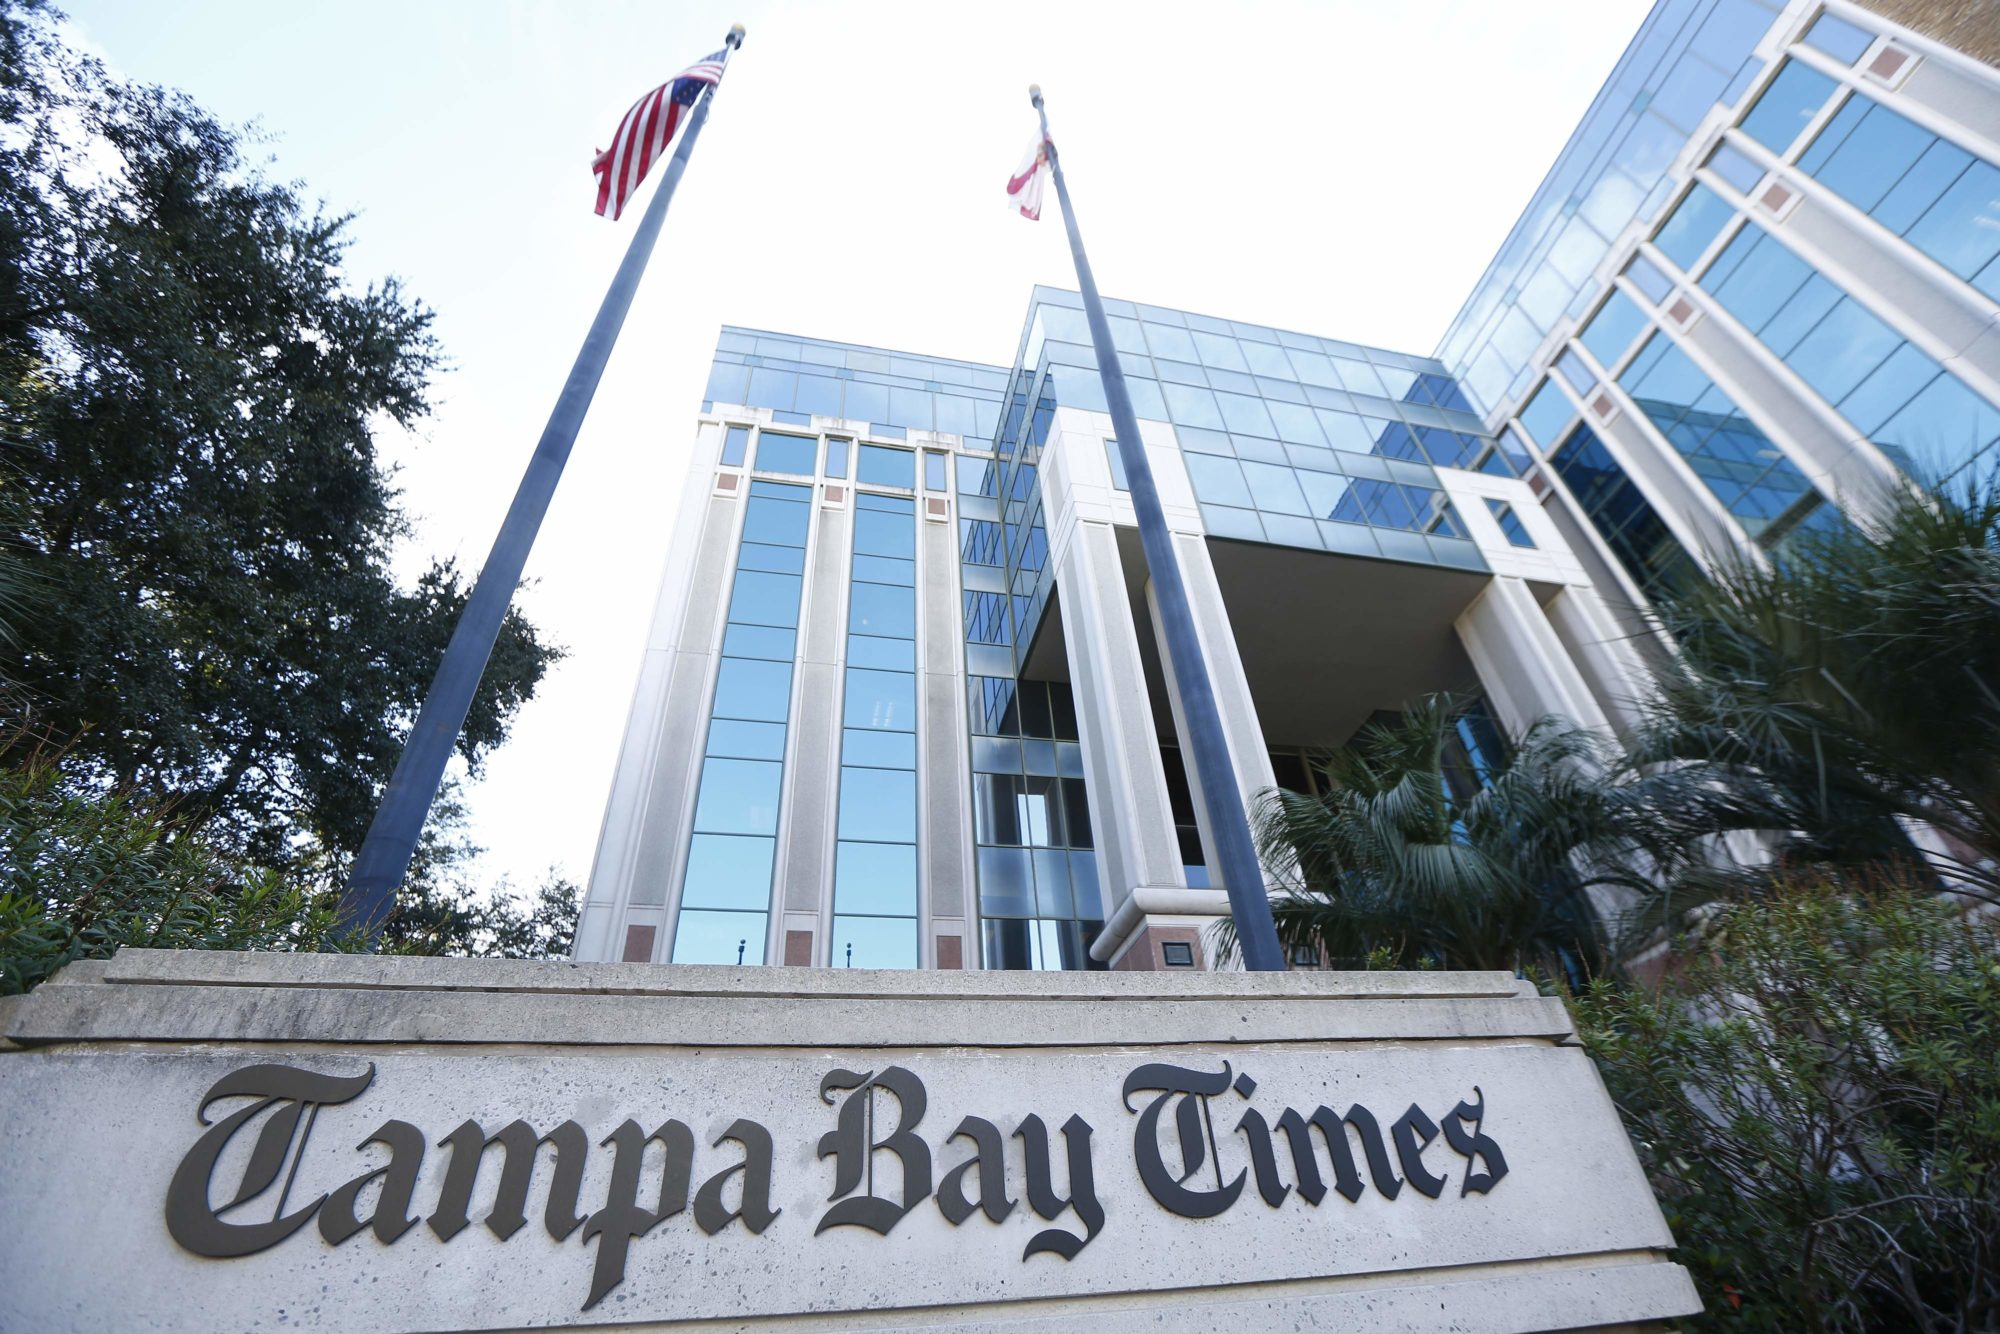 Tampa Bay Times David Straz